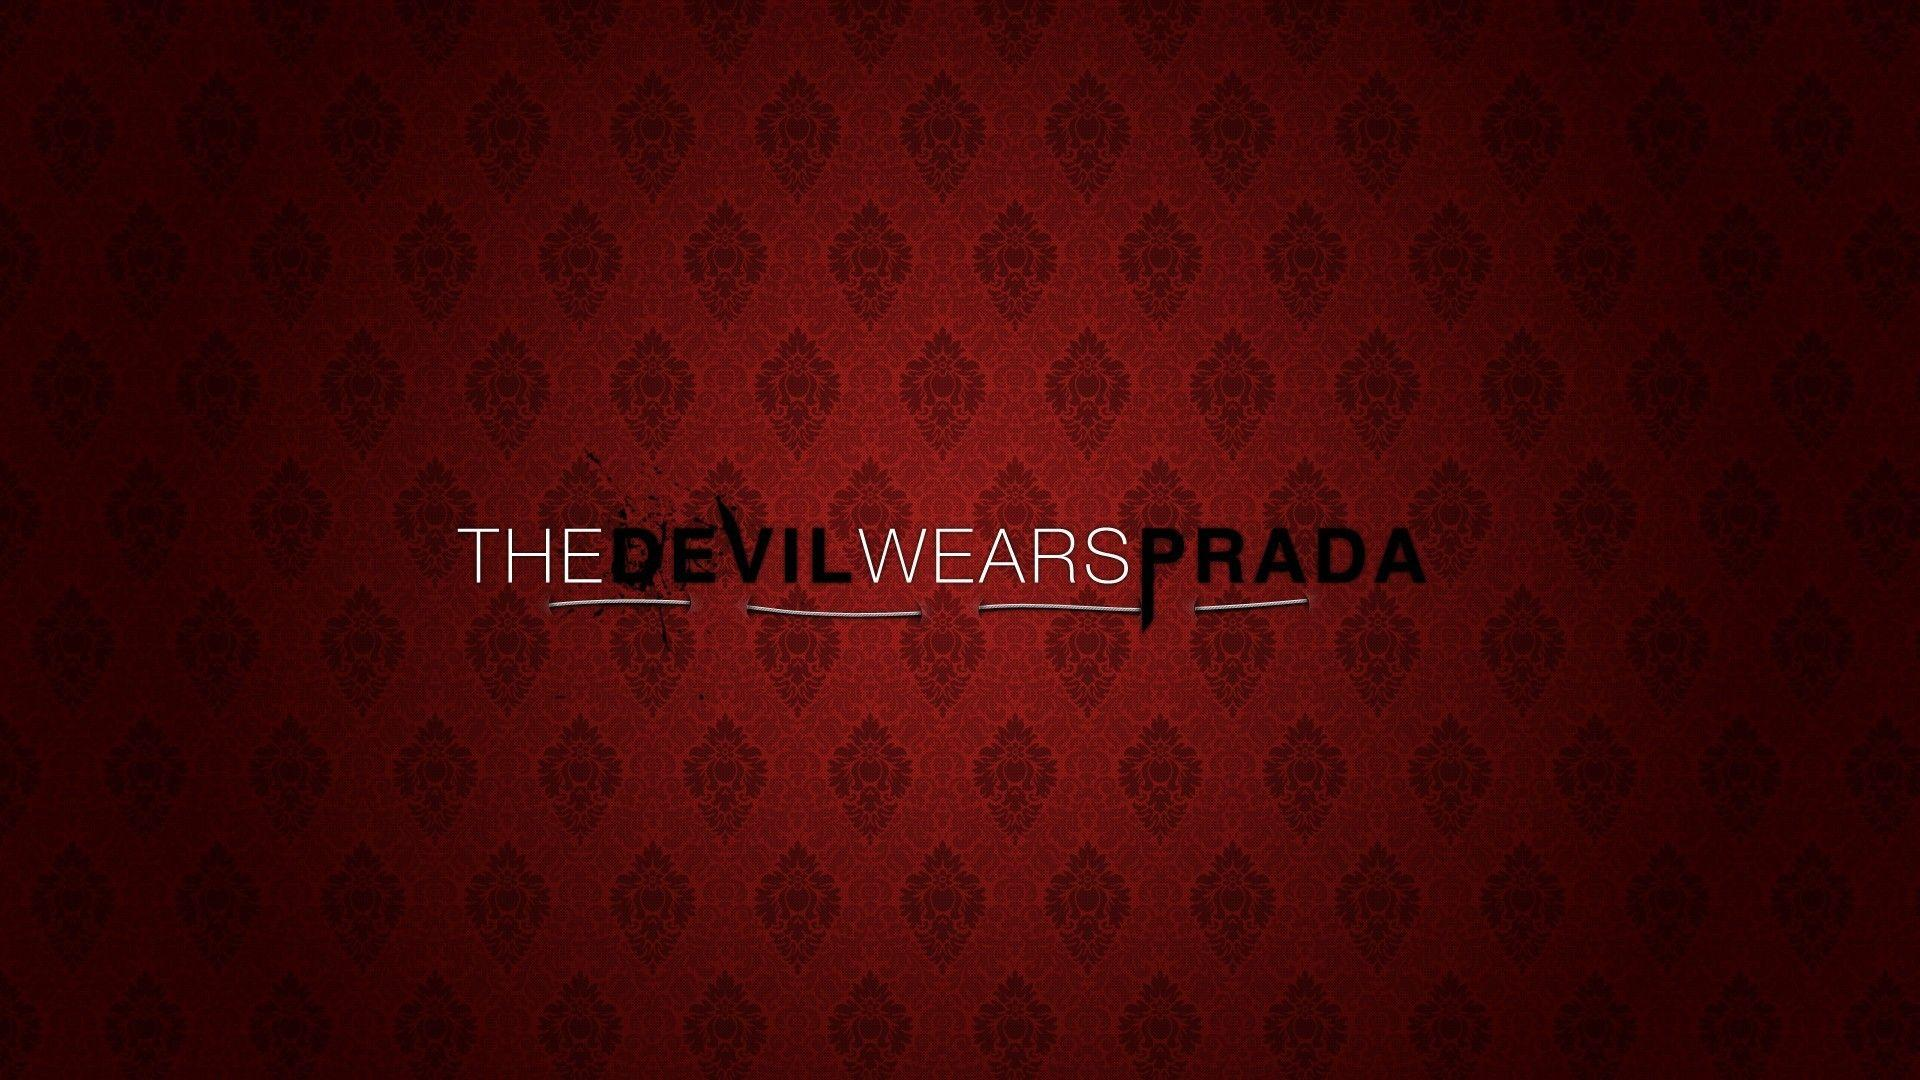 The Devil Wears Prada Wallpapers - Wallpaper Cave